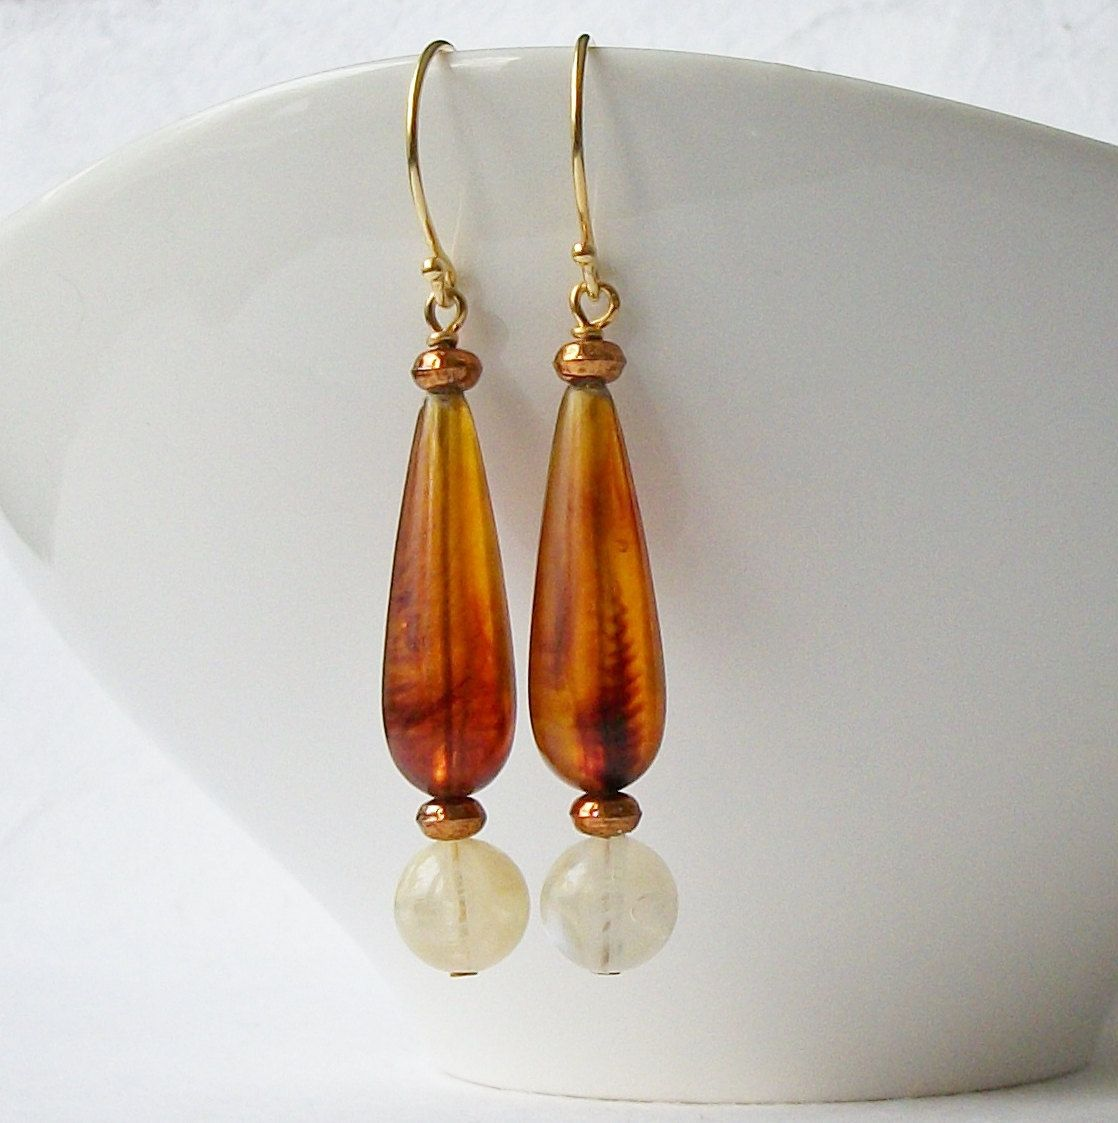 Upcycled Vintage Brown and Milky White Dangle Earrings by PeriniDesigns on Etsy